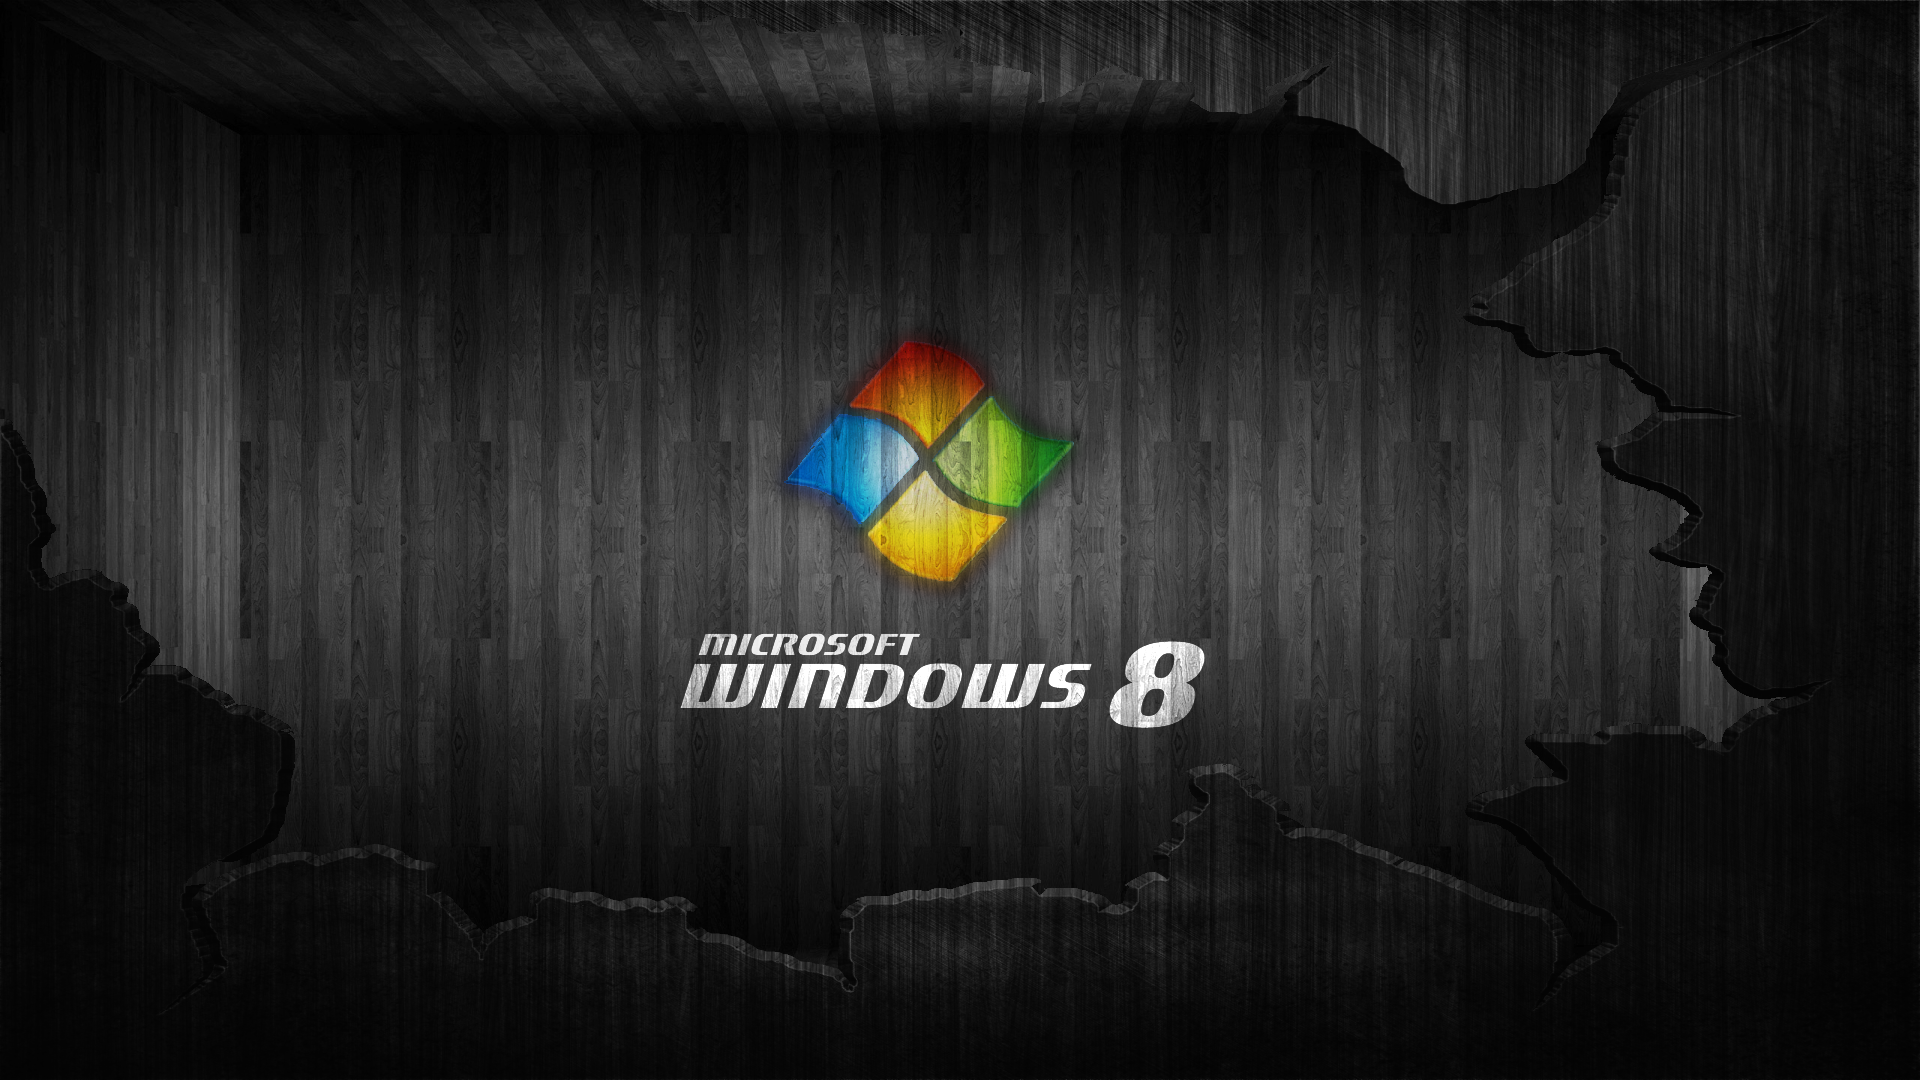 Black Windows 8 Wallpaper Image